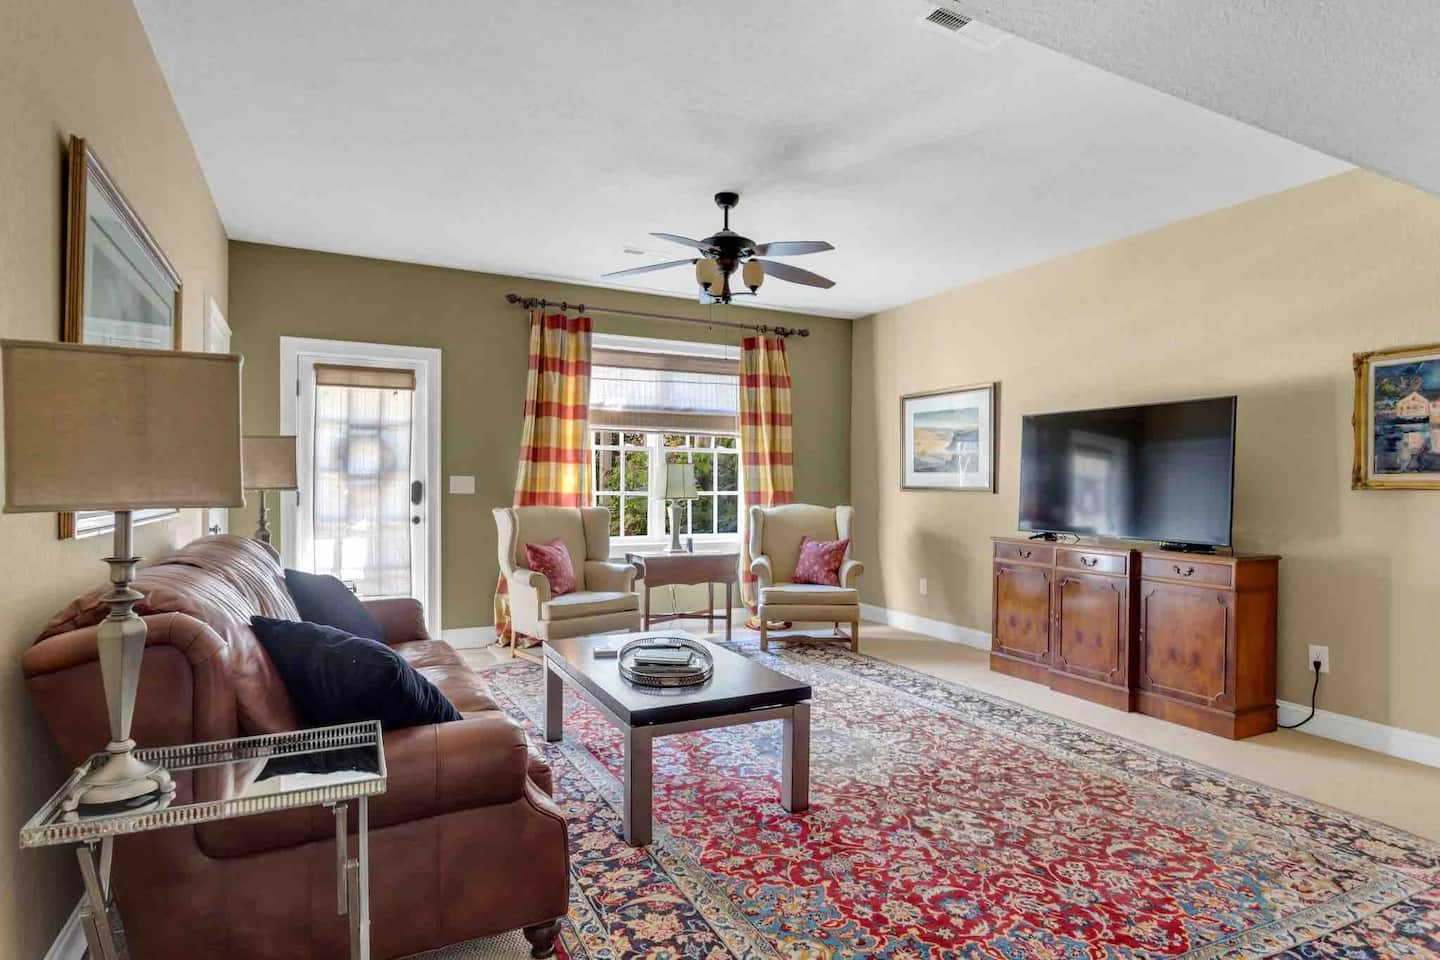 Elegant 1200 sf apt in City of Lookout Mountain TN interior